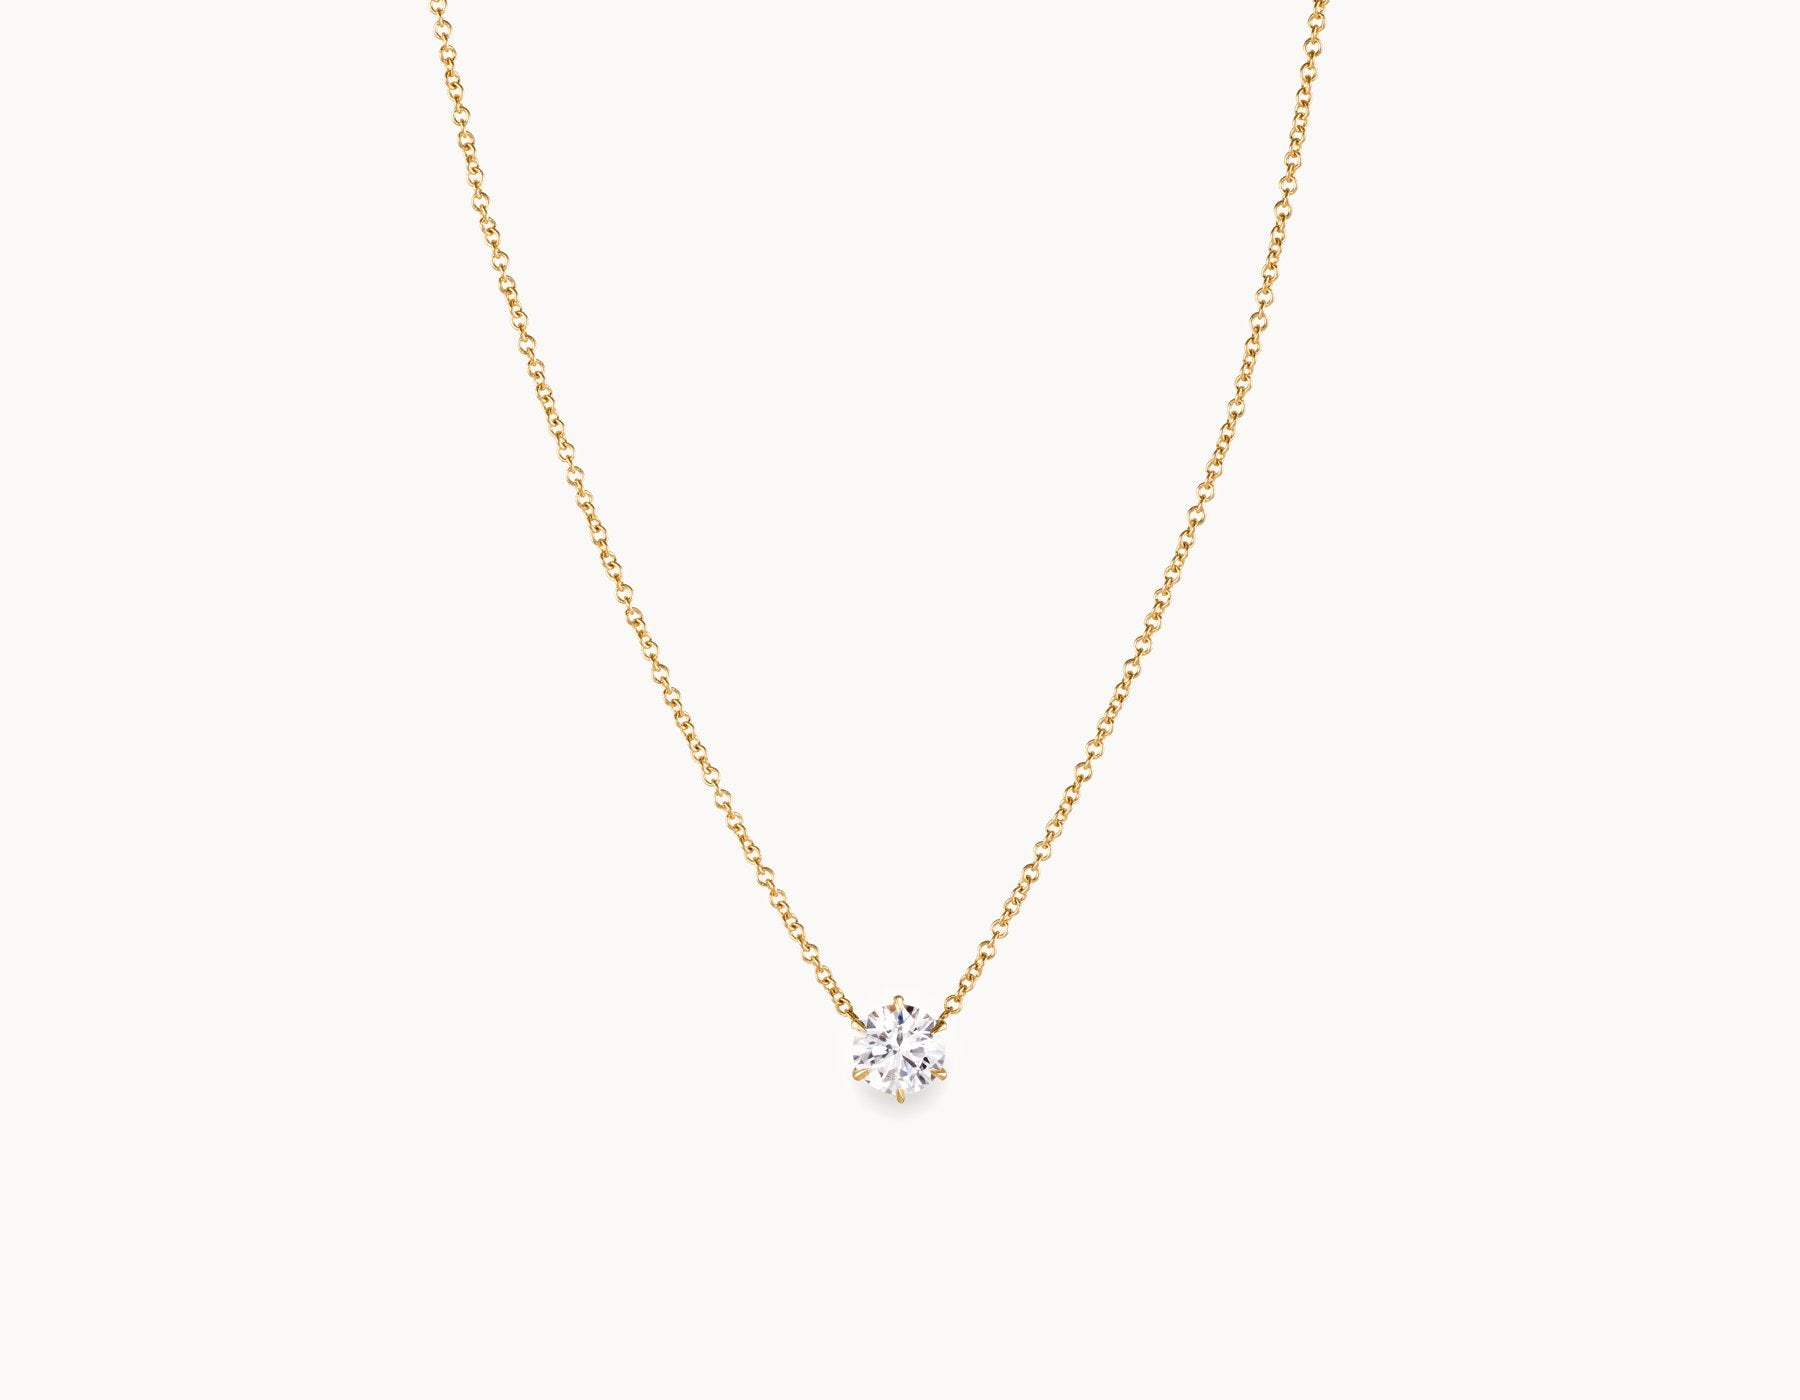 shop diamond necklace silver brilliant cut p gold sweet yellow sterling